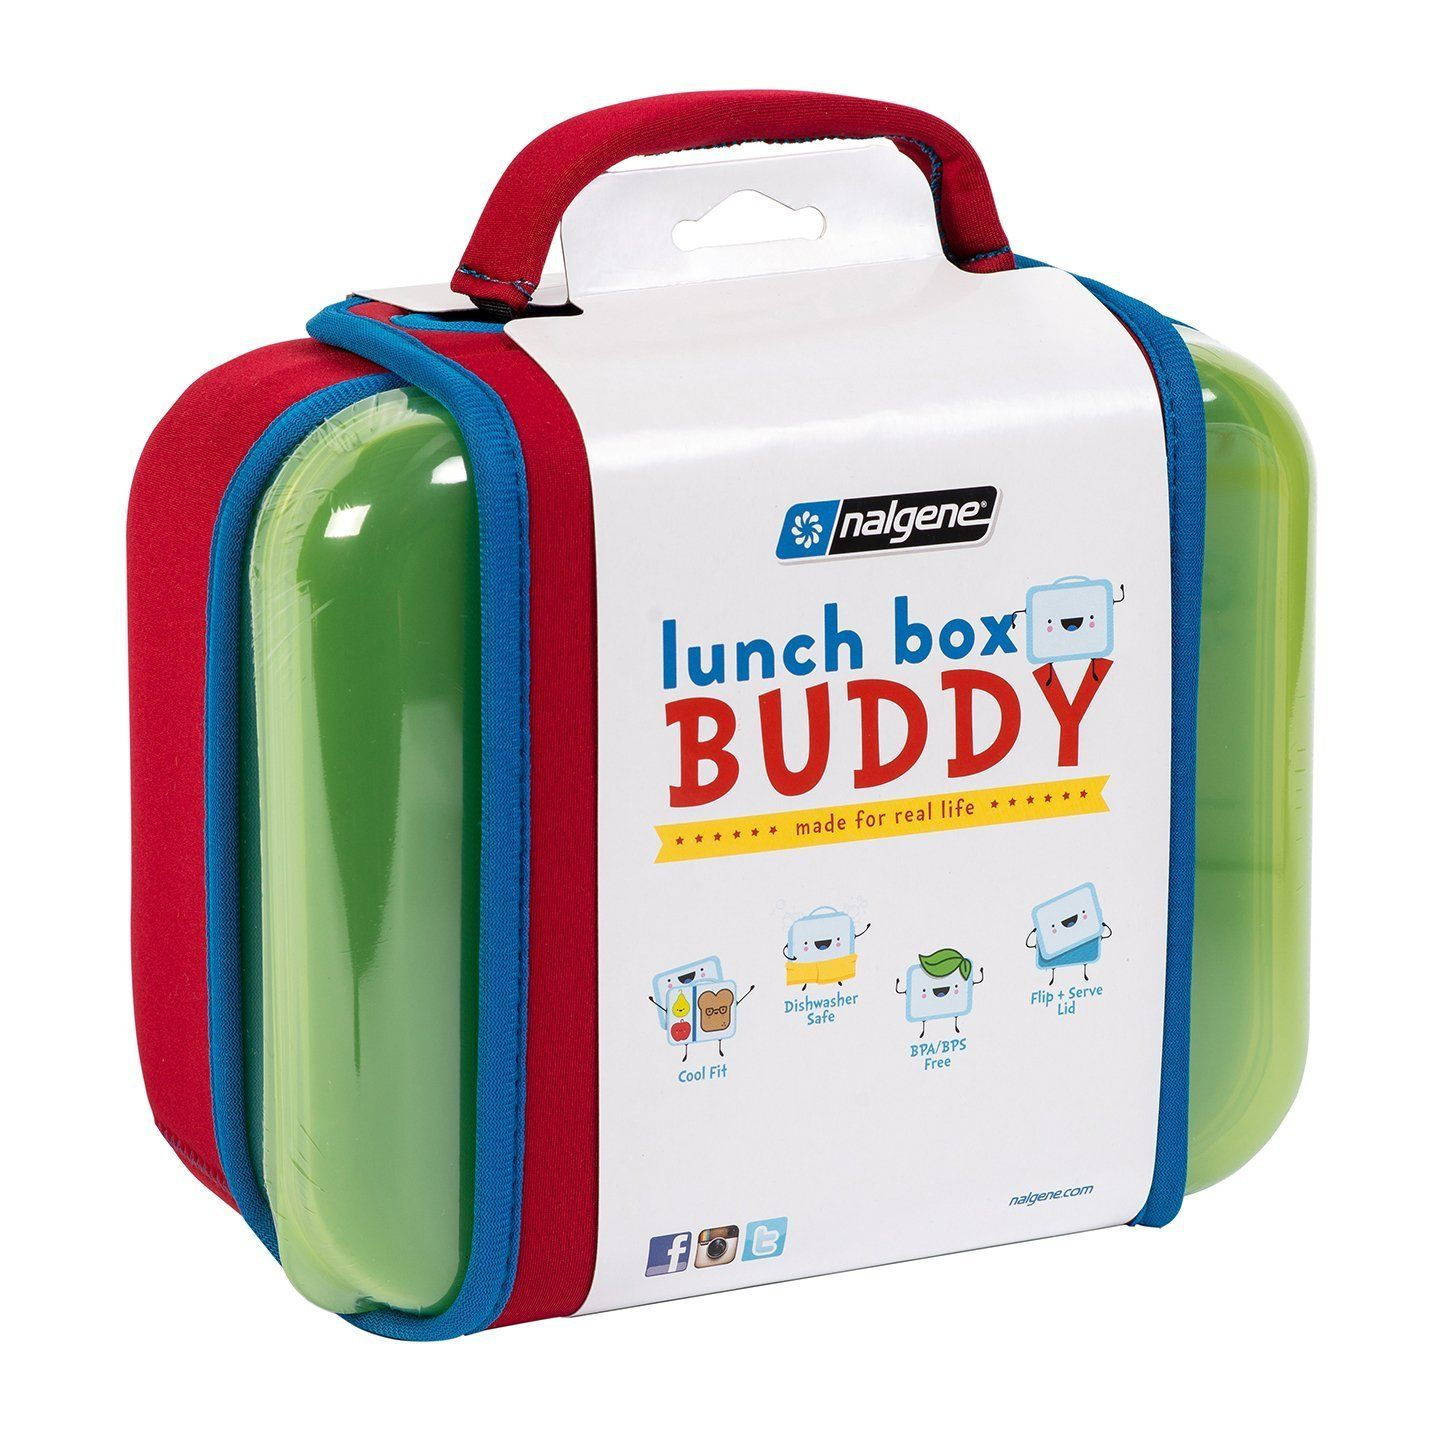 Nalgene Buddy Lunch Box See this awesome item shown here